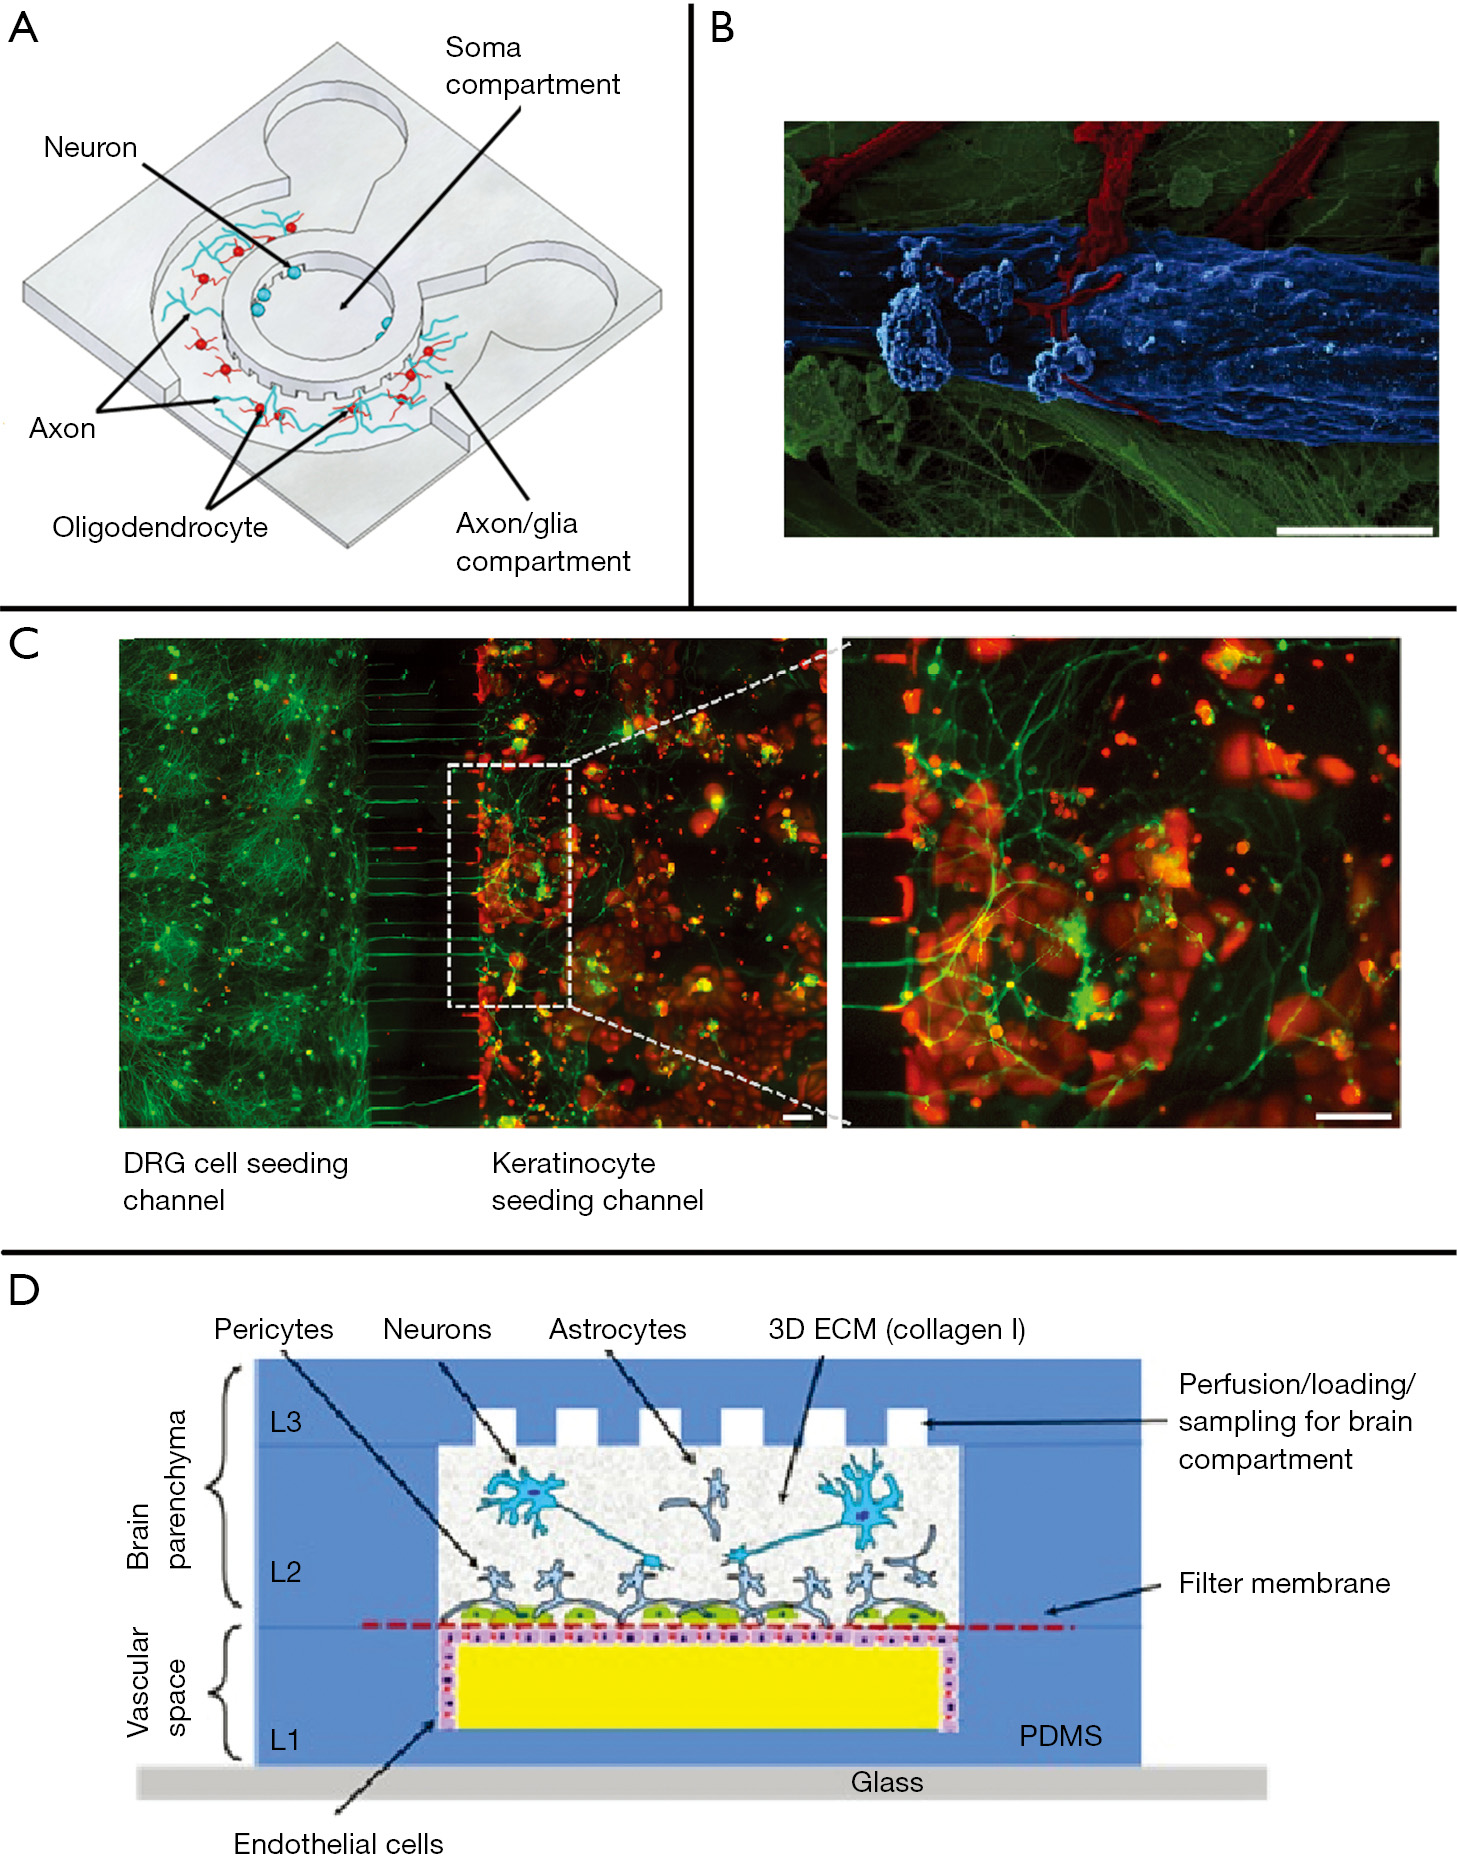 Integrating Mass Spectrometry With Microphysiological Systems For Pics Photos 3d Plant Cell Diagram Labels A Schematic Illustration Of The Microfluidic Compartmentalized Cns Neuron Co Culture Platform View Circular Device Reproduced From Park J